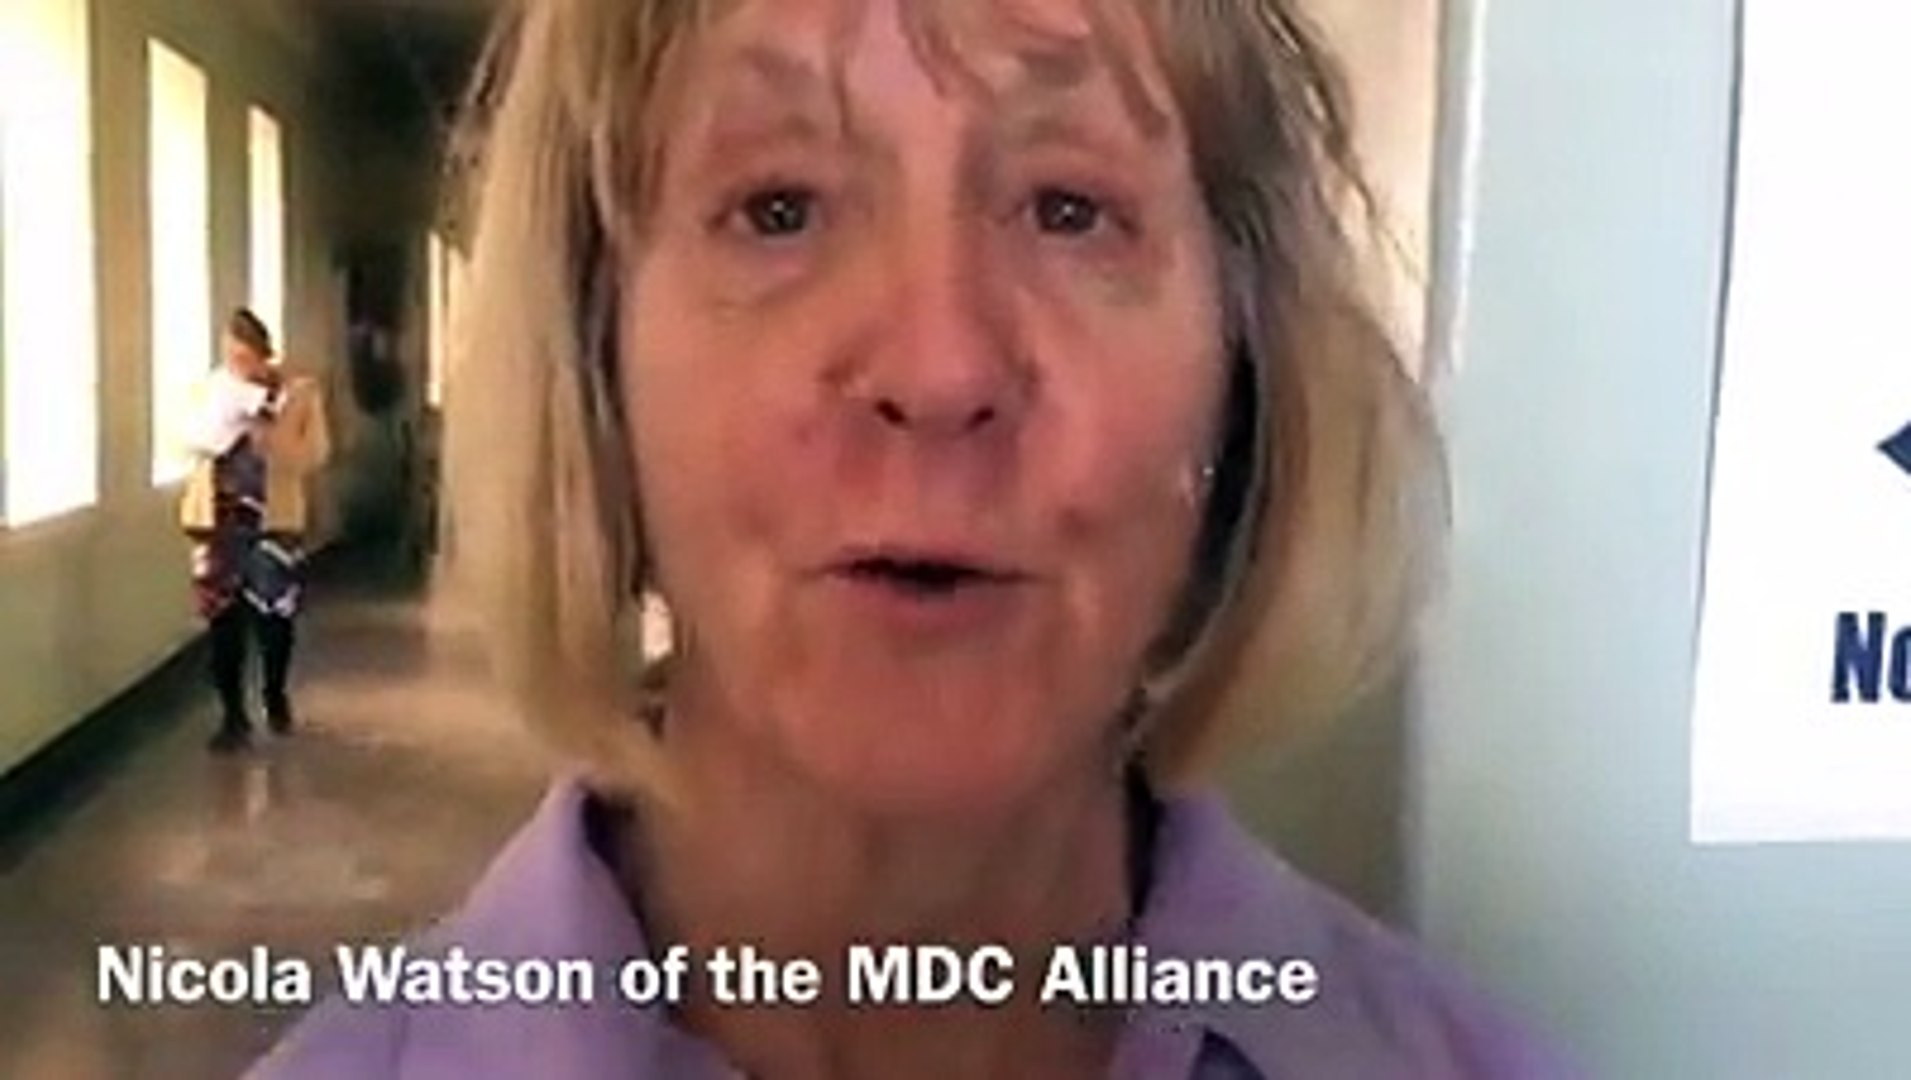 Nicola Watson, MDC Alliance candidate for Bulawayo Central for the National Assembly says she is con